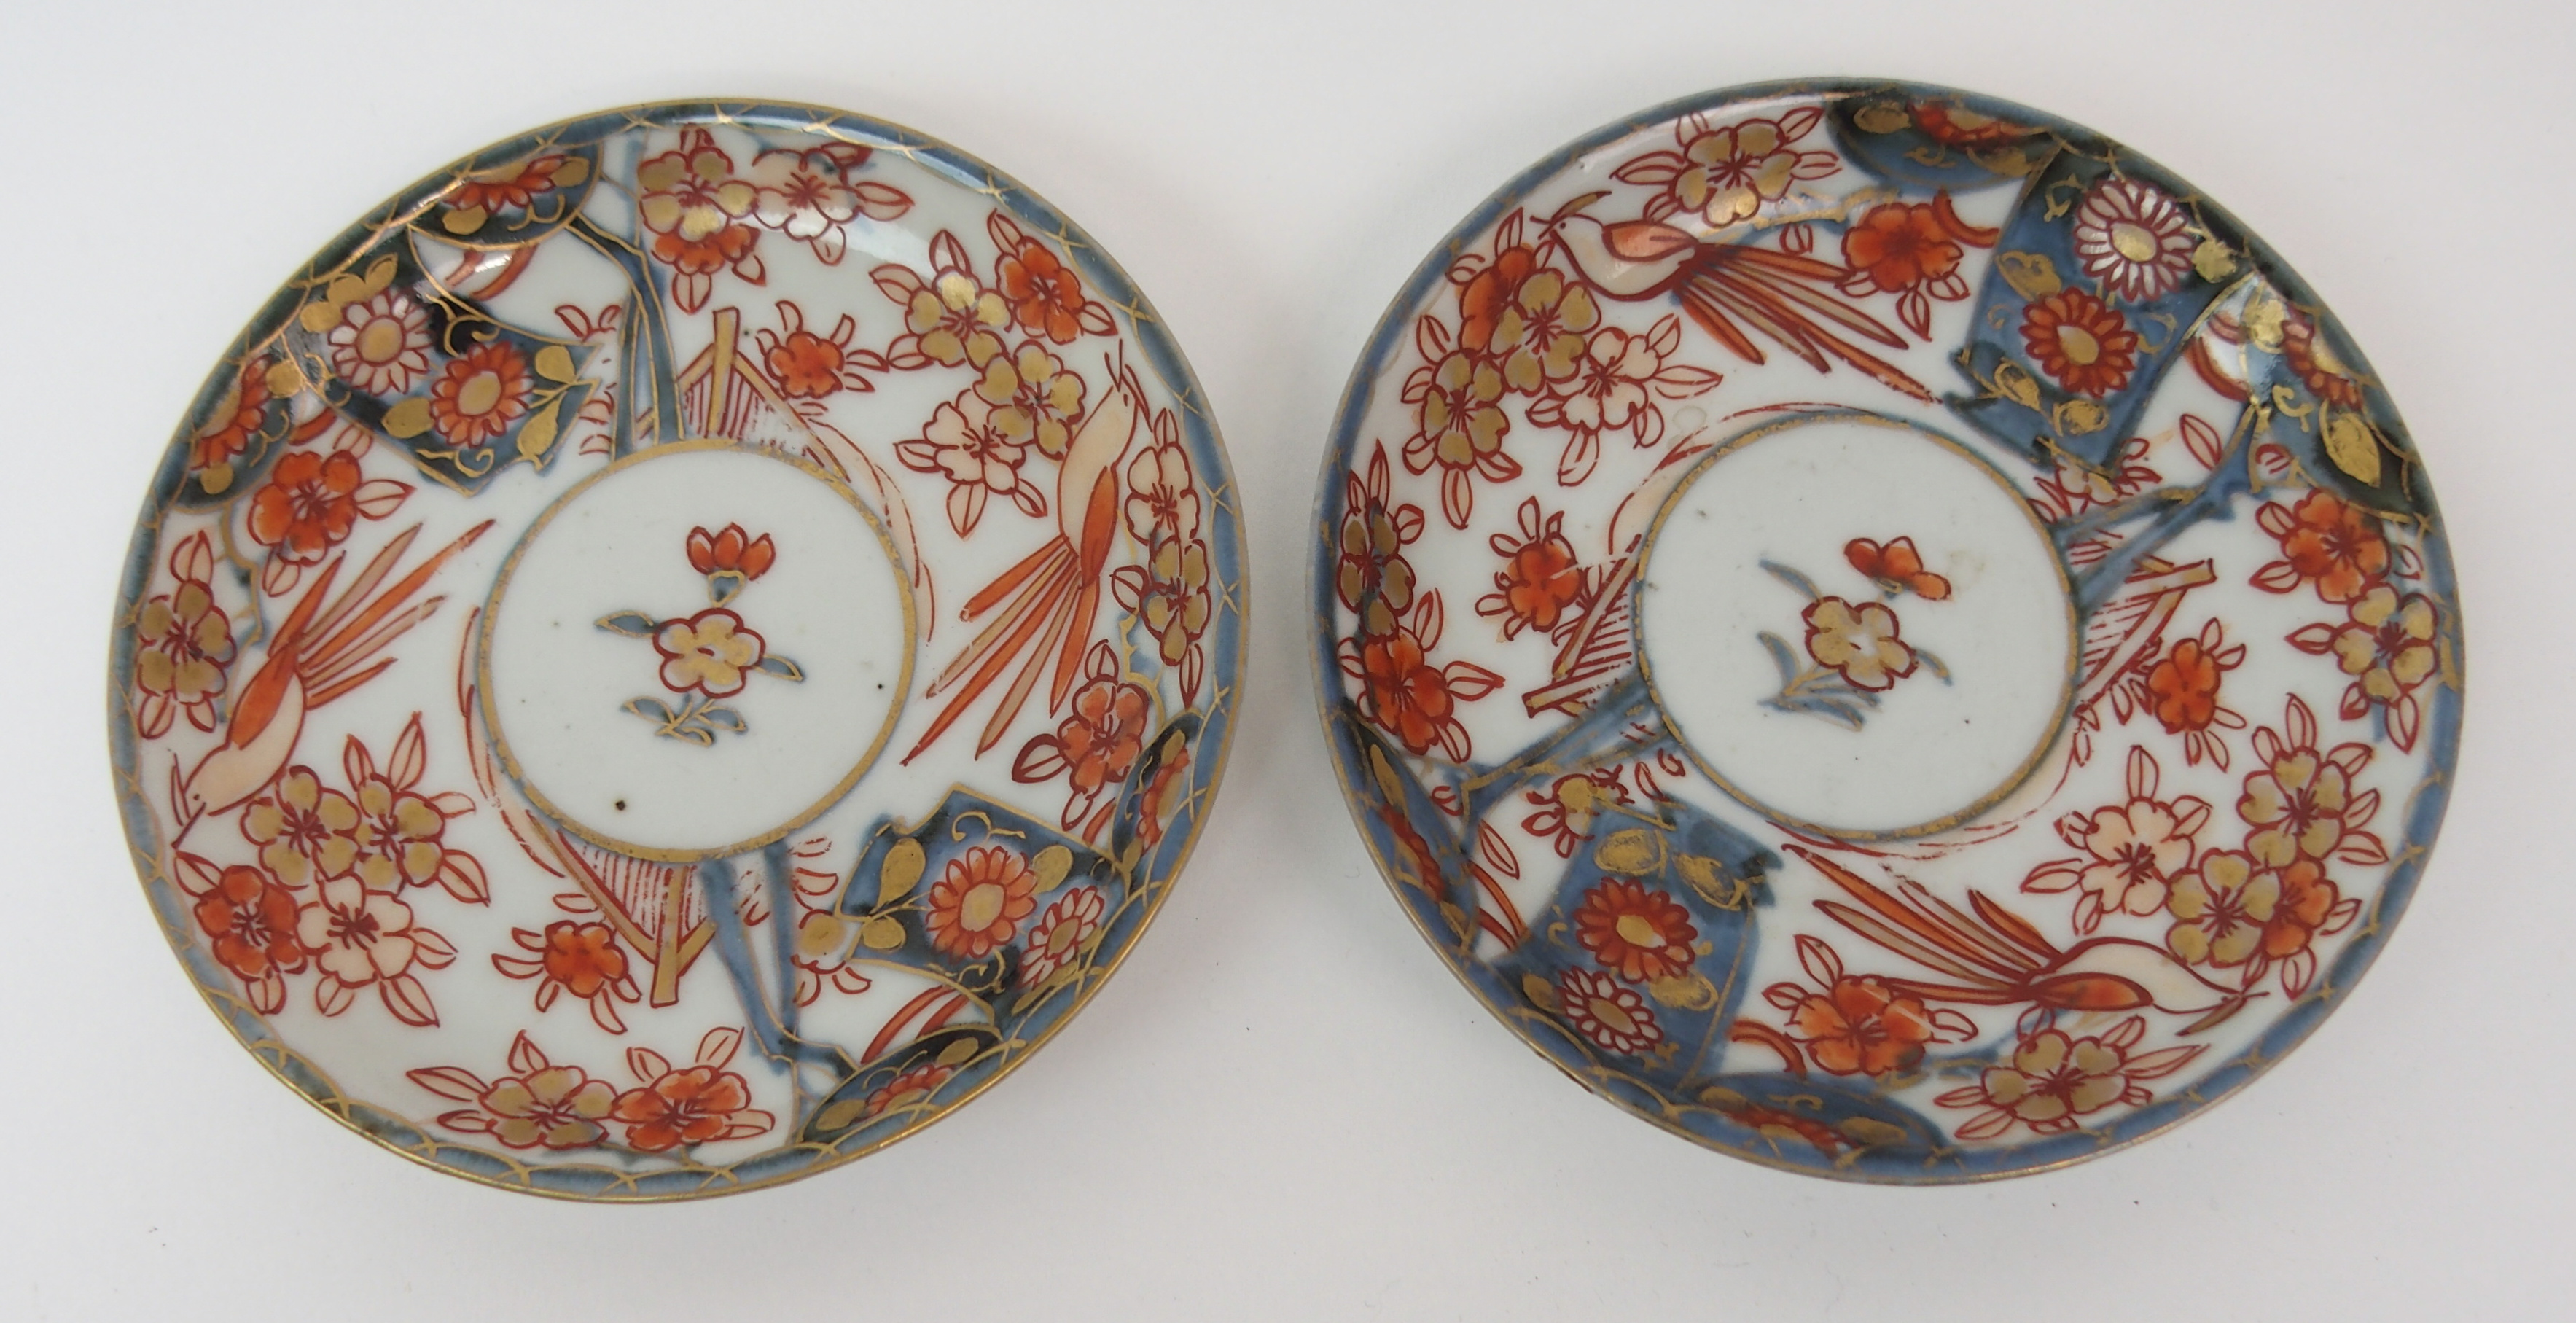 Lot 3 - A CHINESE FAMILLE ROSE CHARGER painted with cockerels amongst foliage and blue rockwork within a